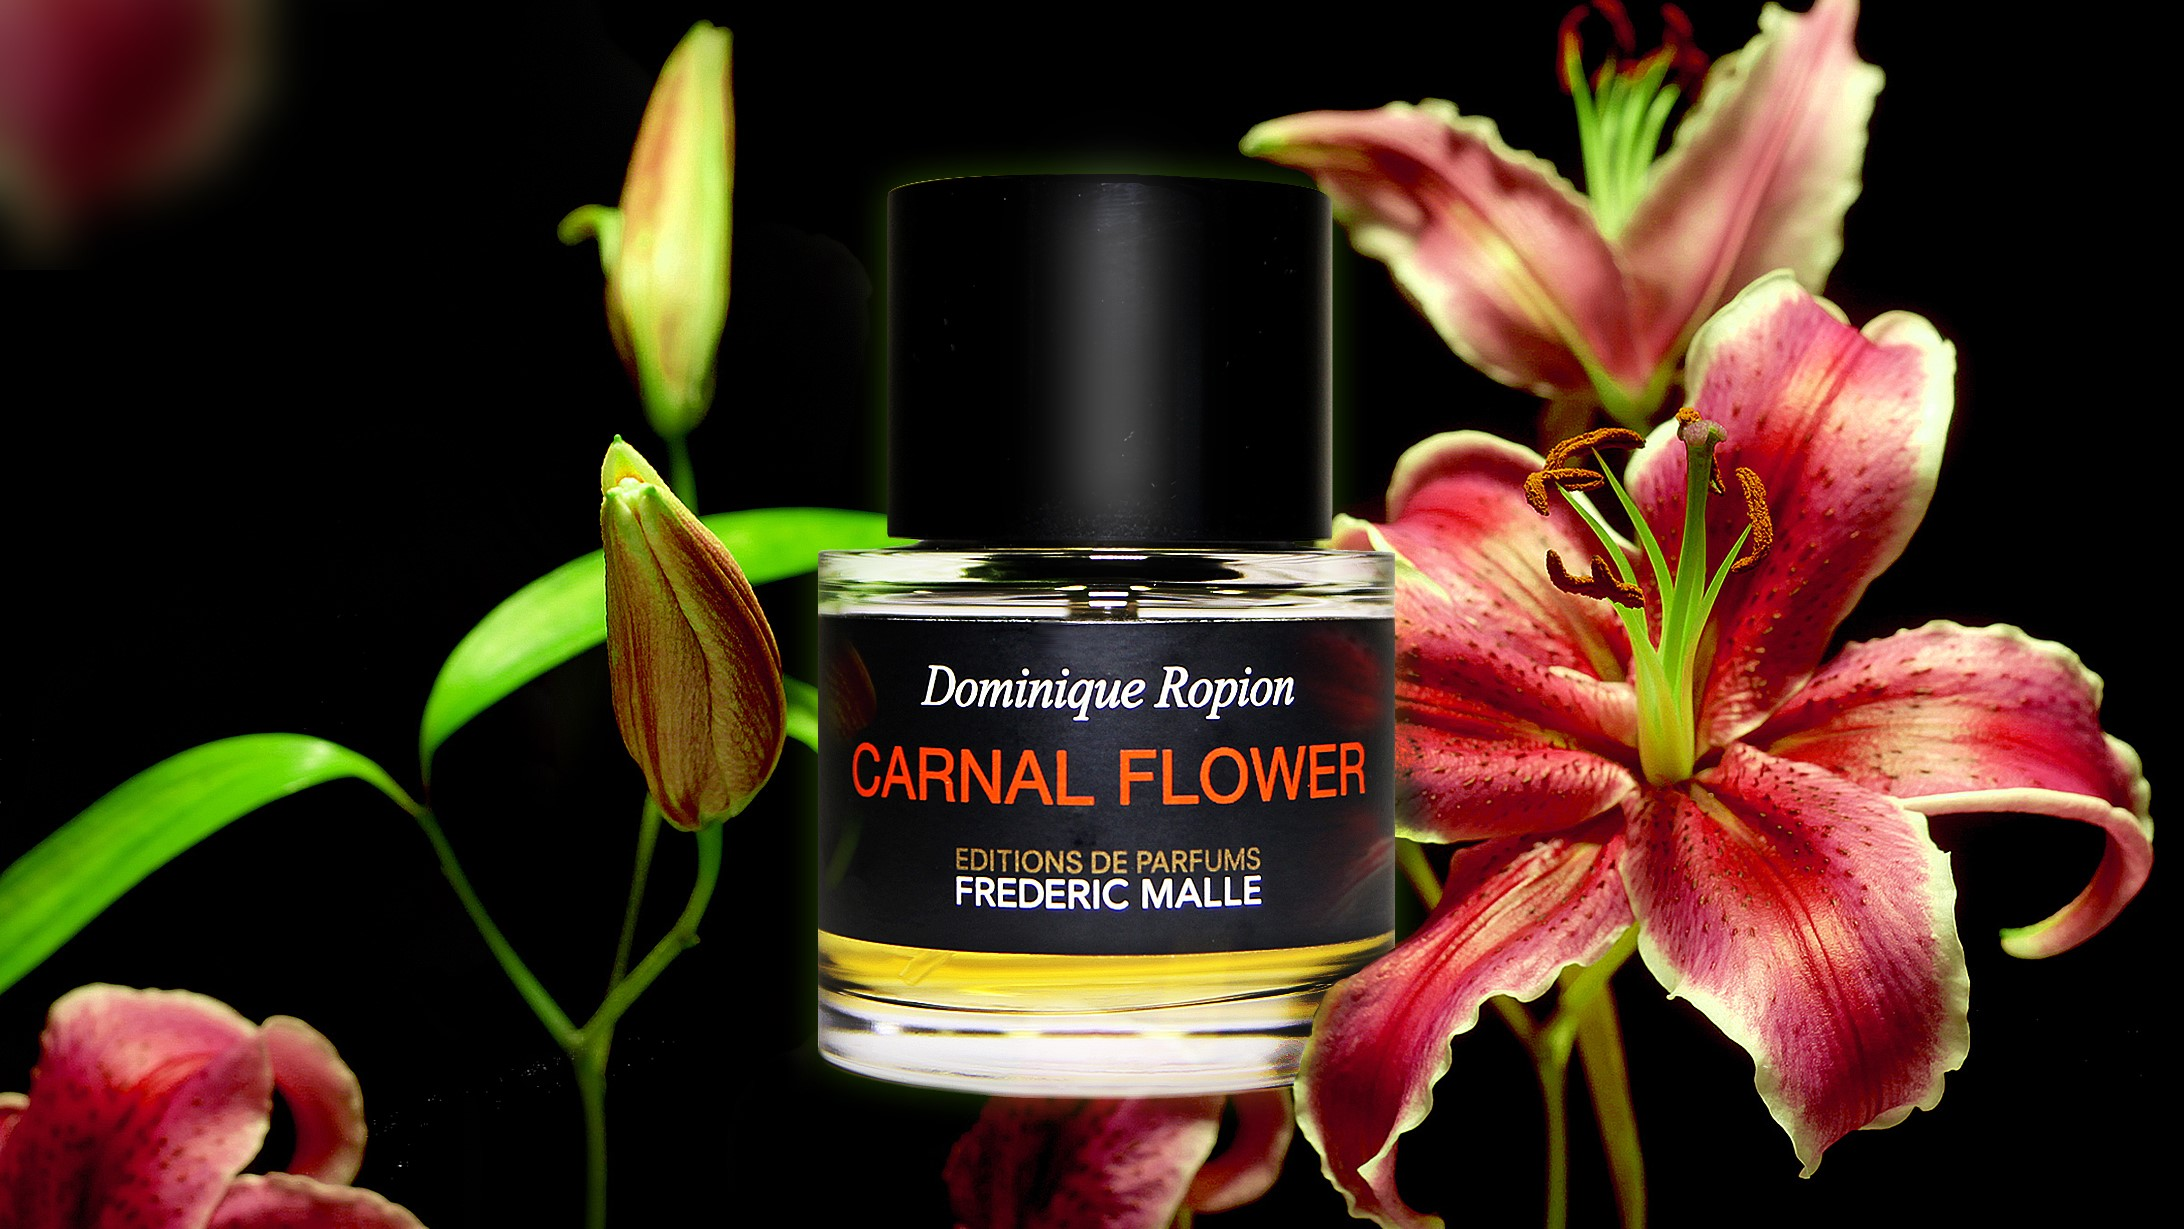 c08a9d03b2dad Frederic Malle – Carnal Flower eau de parfum review • Scentertainer